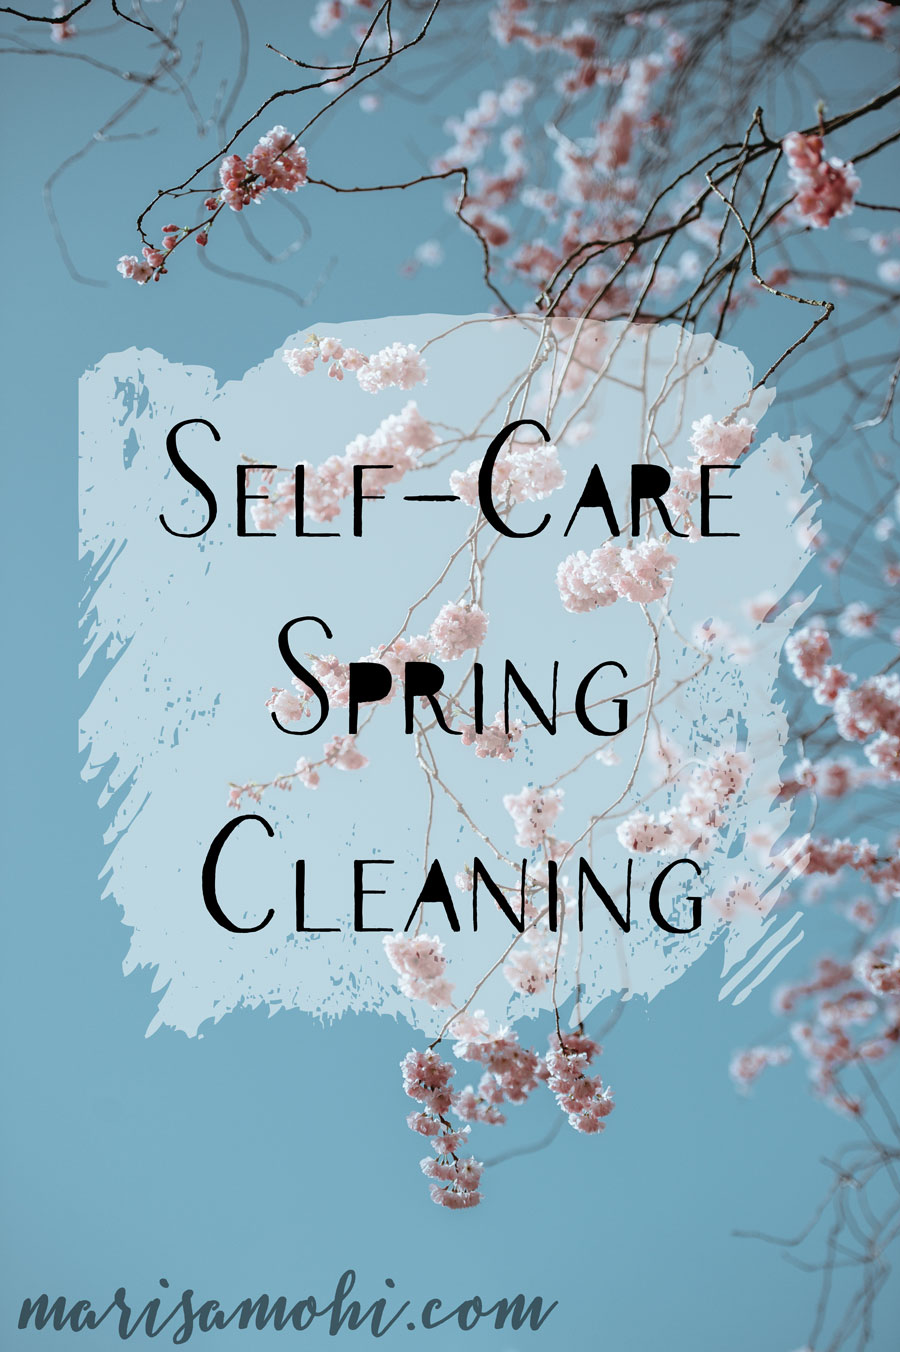 Self-Care Spring Cleaning